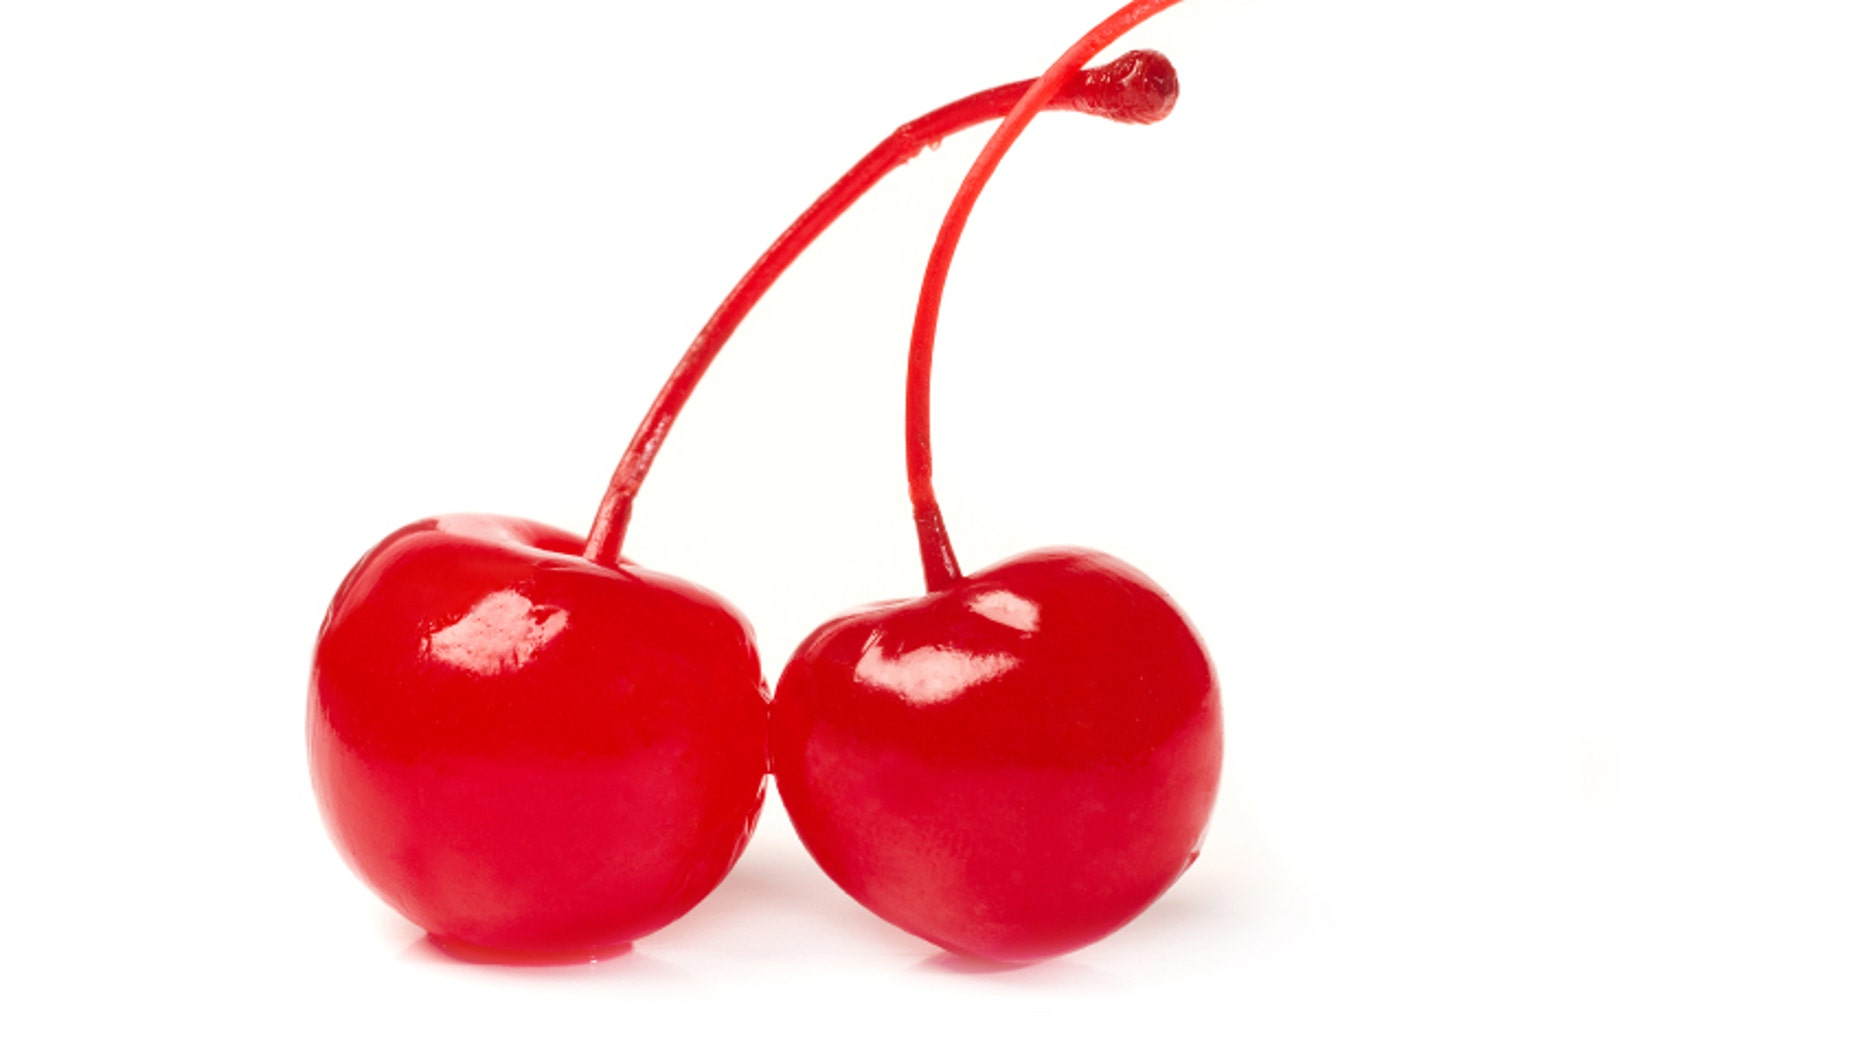 The once maligned maraschino cherries are undergoing an industry makeover.